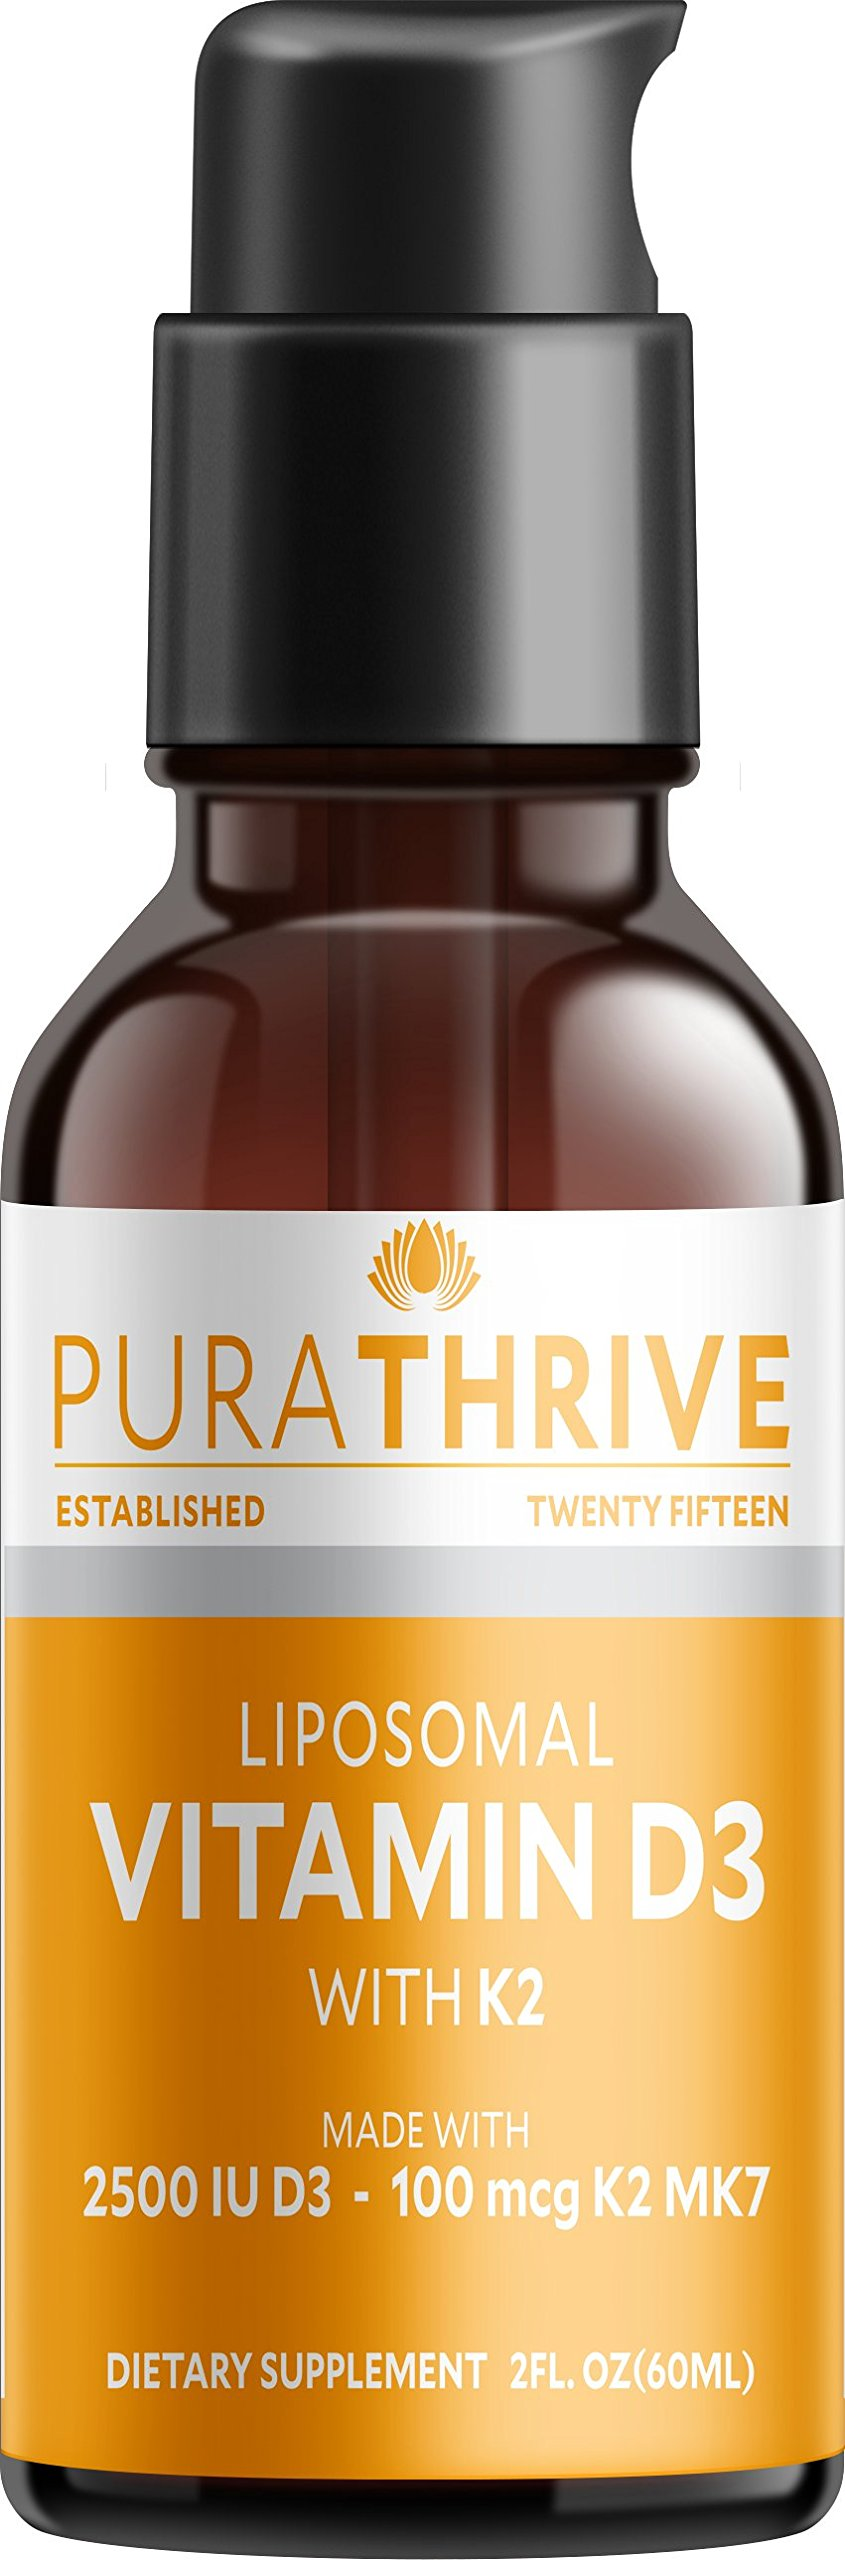 PuraTHRIVE Liquid Vitamin D3 with K2. Best Absorption with Liposomal Delivery. 2oz. (